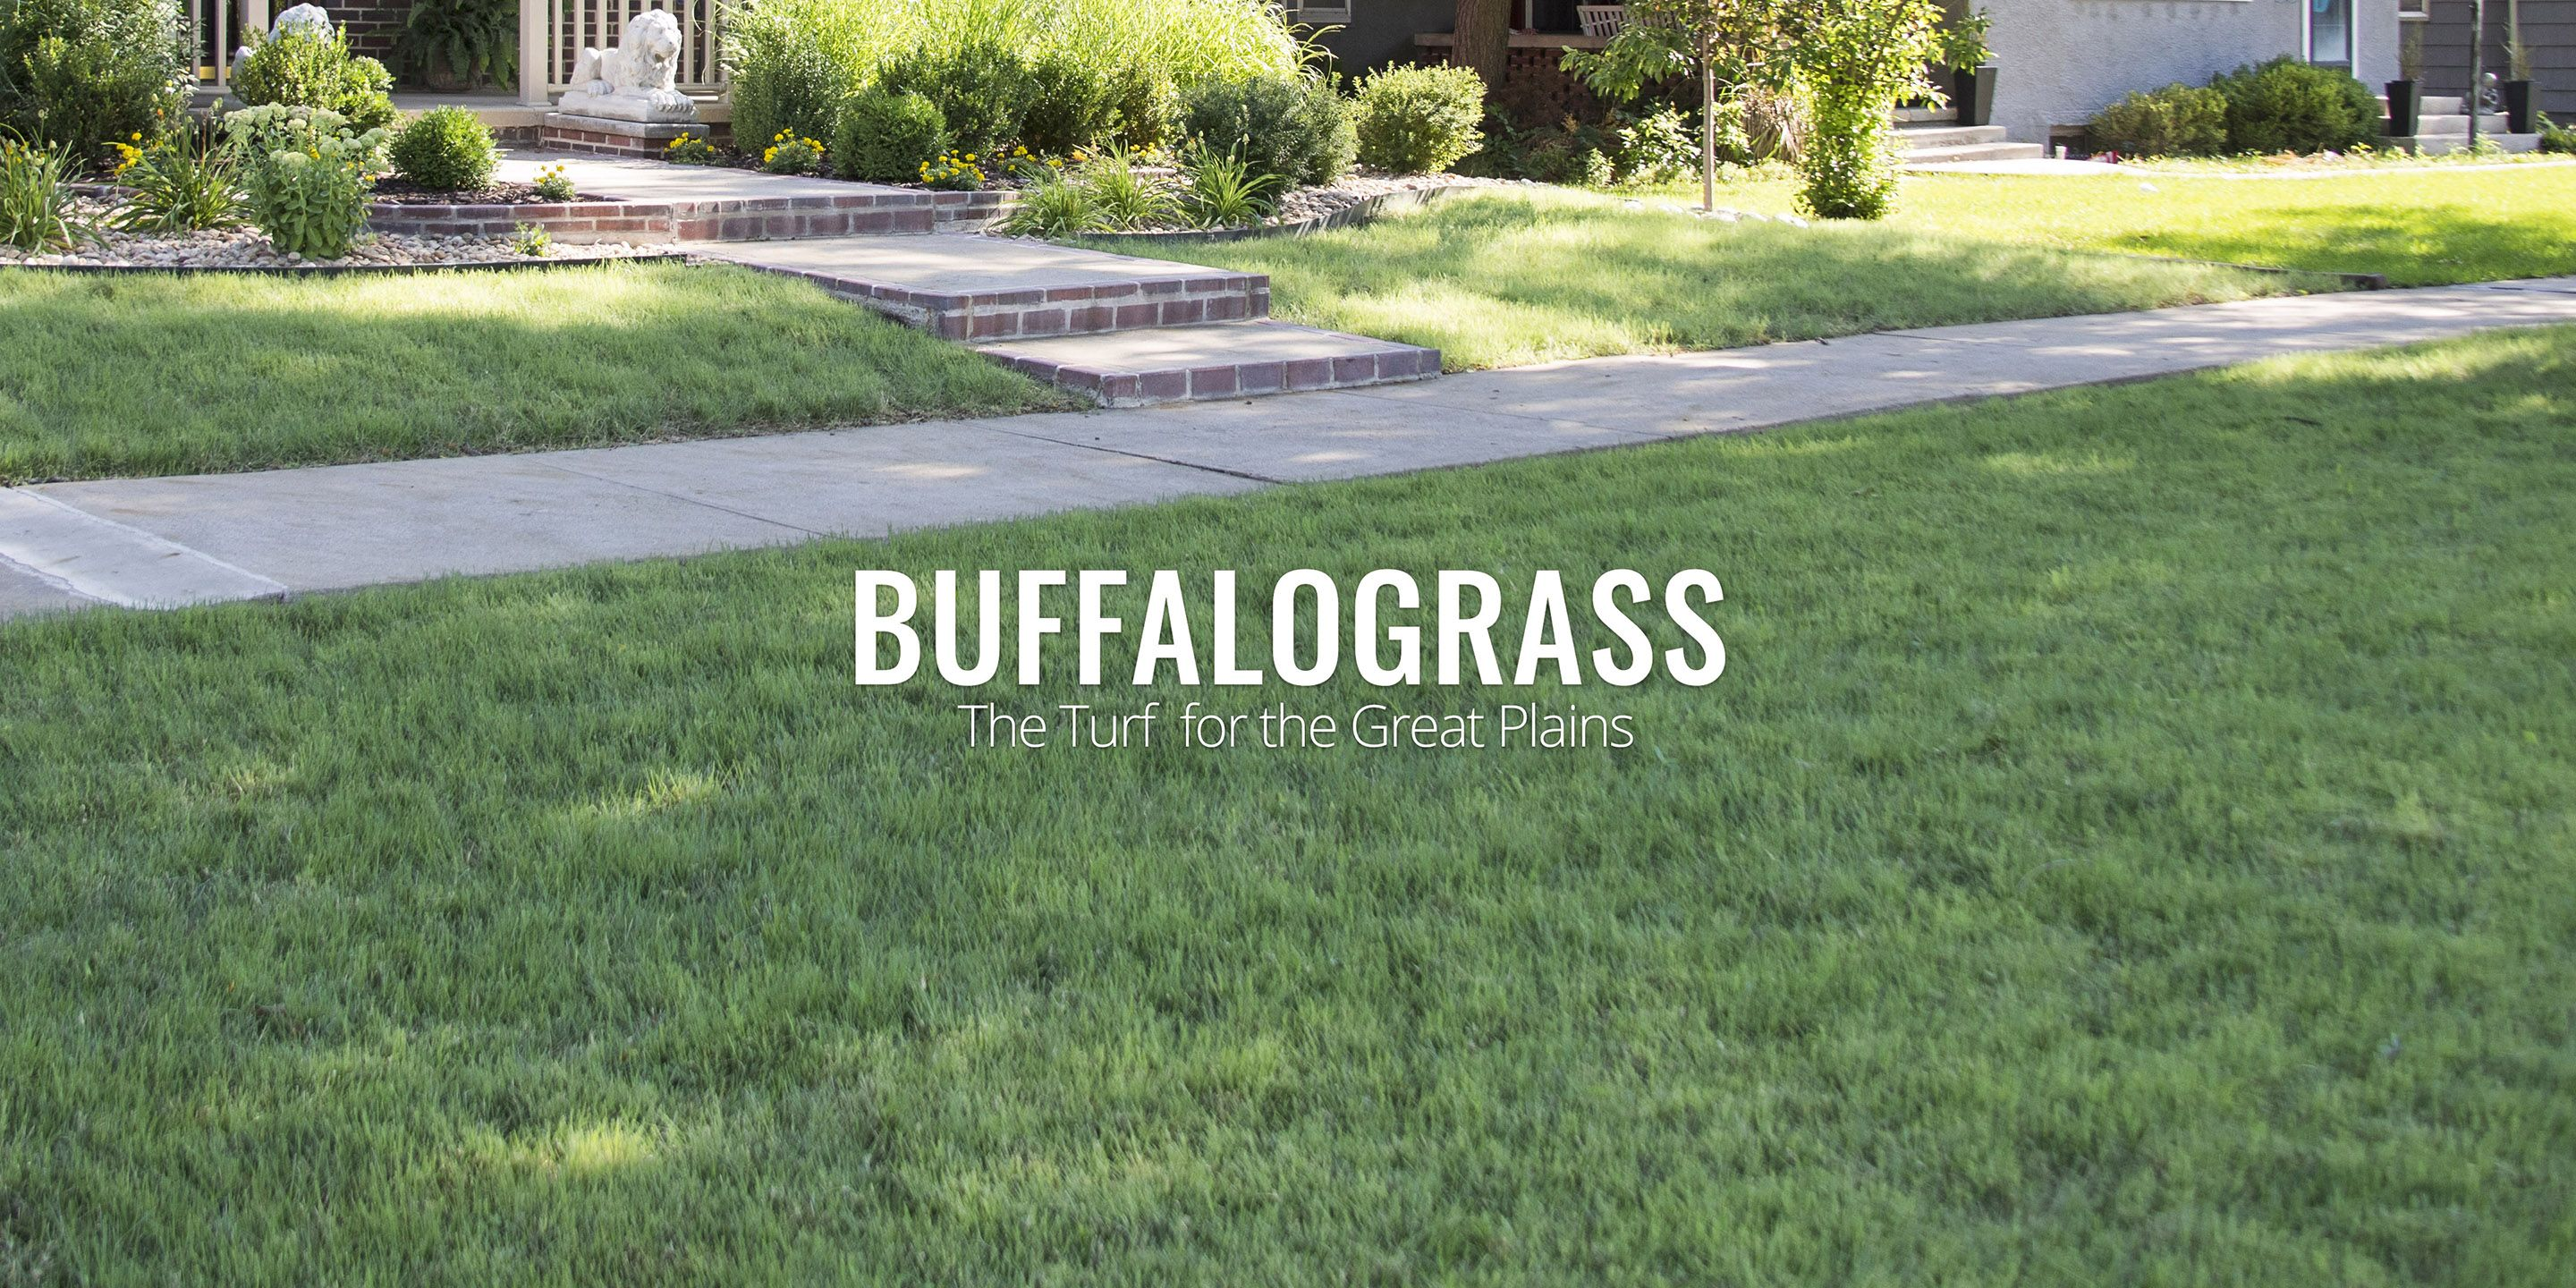 Our Turf Type Buffalo Grass Is An Industry Standard Find Out How You Could Plant The Seed Now And Have An Establish Buffal Warm Season Grass Grass Type Seeds